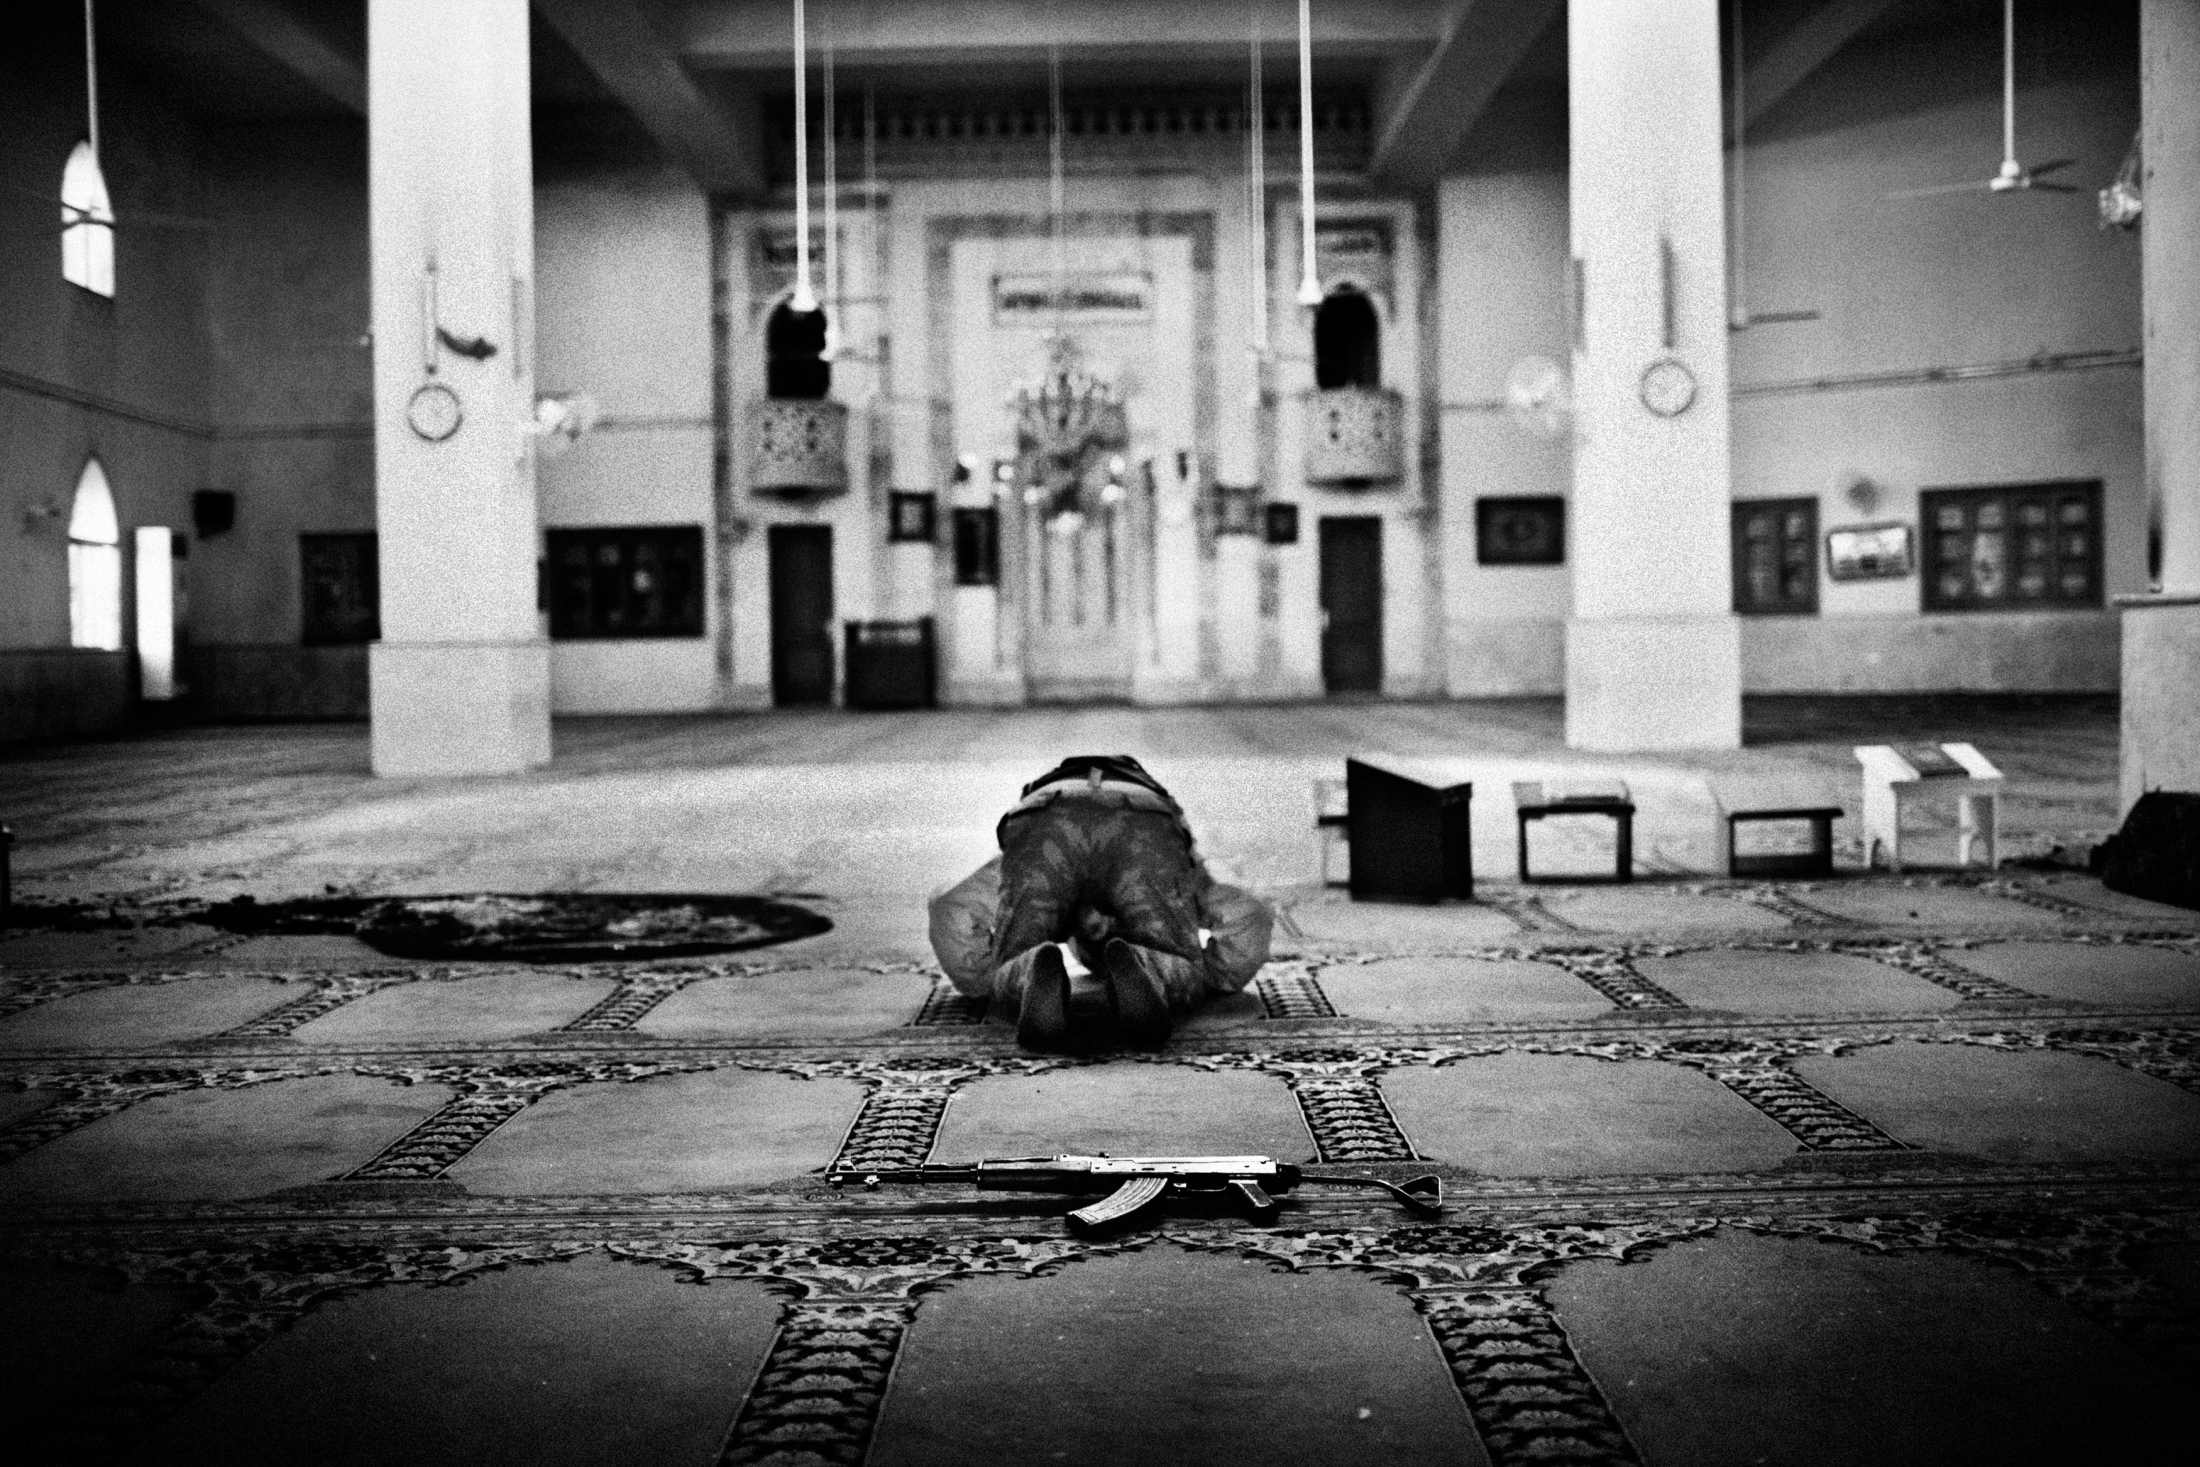 """A Syrian islamist rebel prays in a destroyed mosquee of the Al-Amriyah neighborhood of Aleppo, Syria, Wednesday, Jan. 15, 2013. The United Nations estimated that more than 400,000 people have been killed in Syria's 60-month-old uprising against authoritarian rule, a toll one-third higher than what anti-regime activists had counted. The U.N. human rights chief called the toll """"truly shocking."""" Copyright: Spanish Photojournalist Andoni Lubaki"""